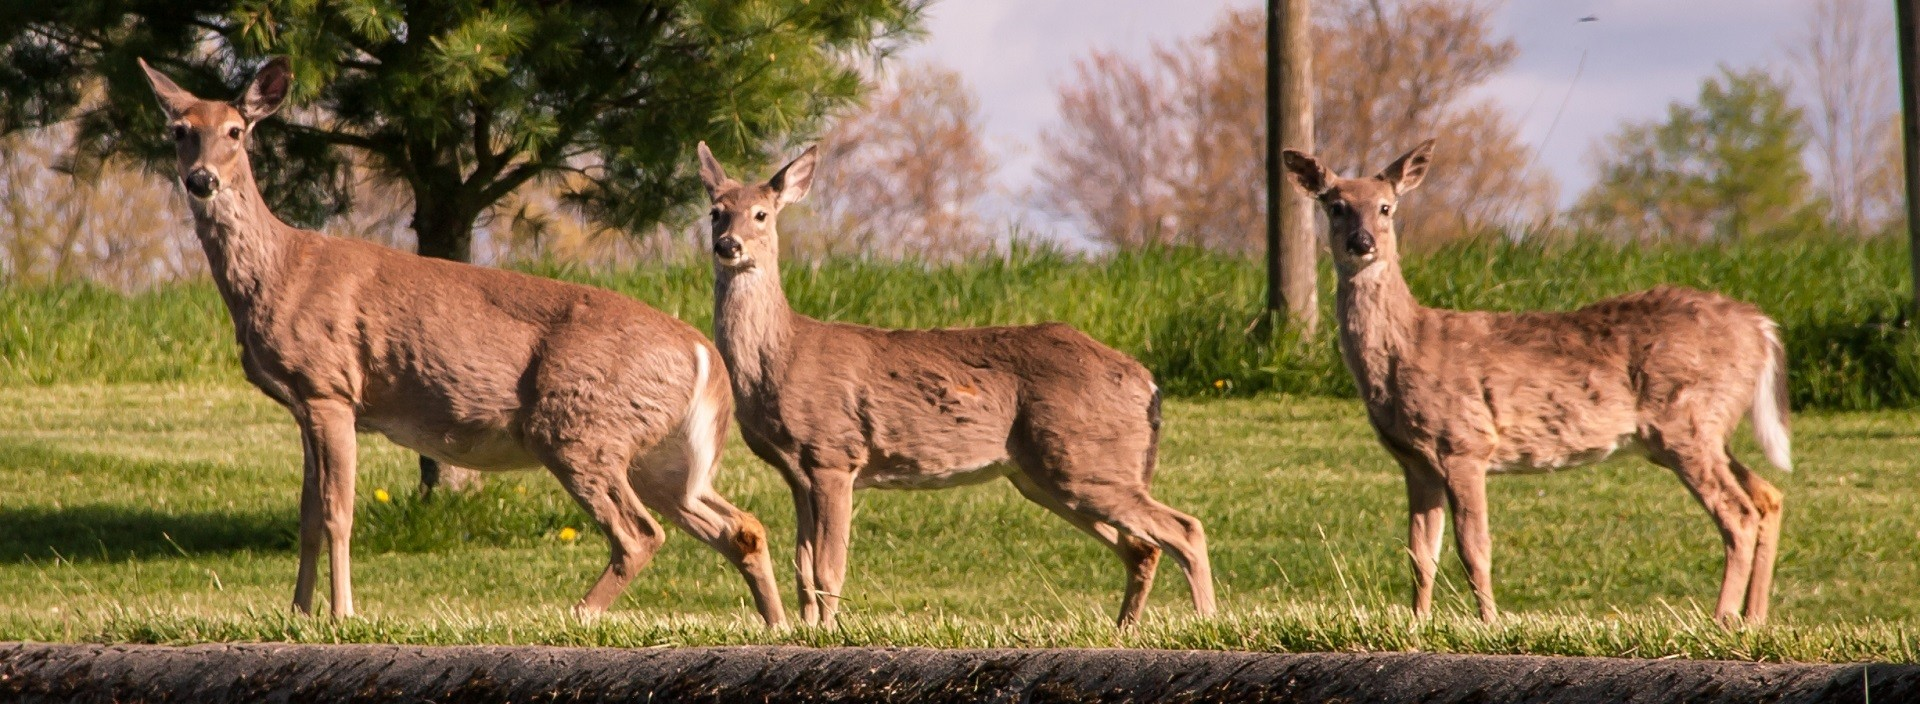 White-tailed deer on the move